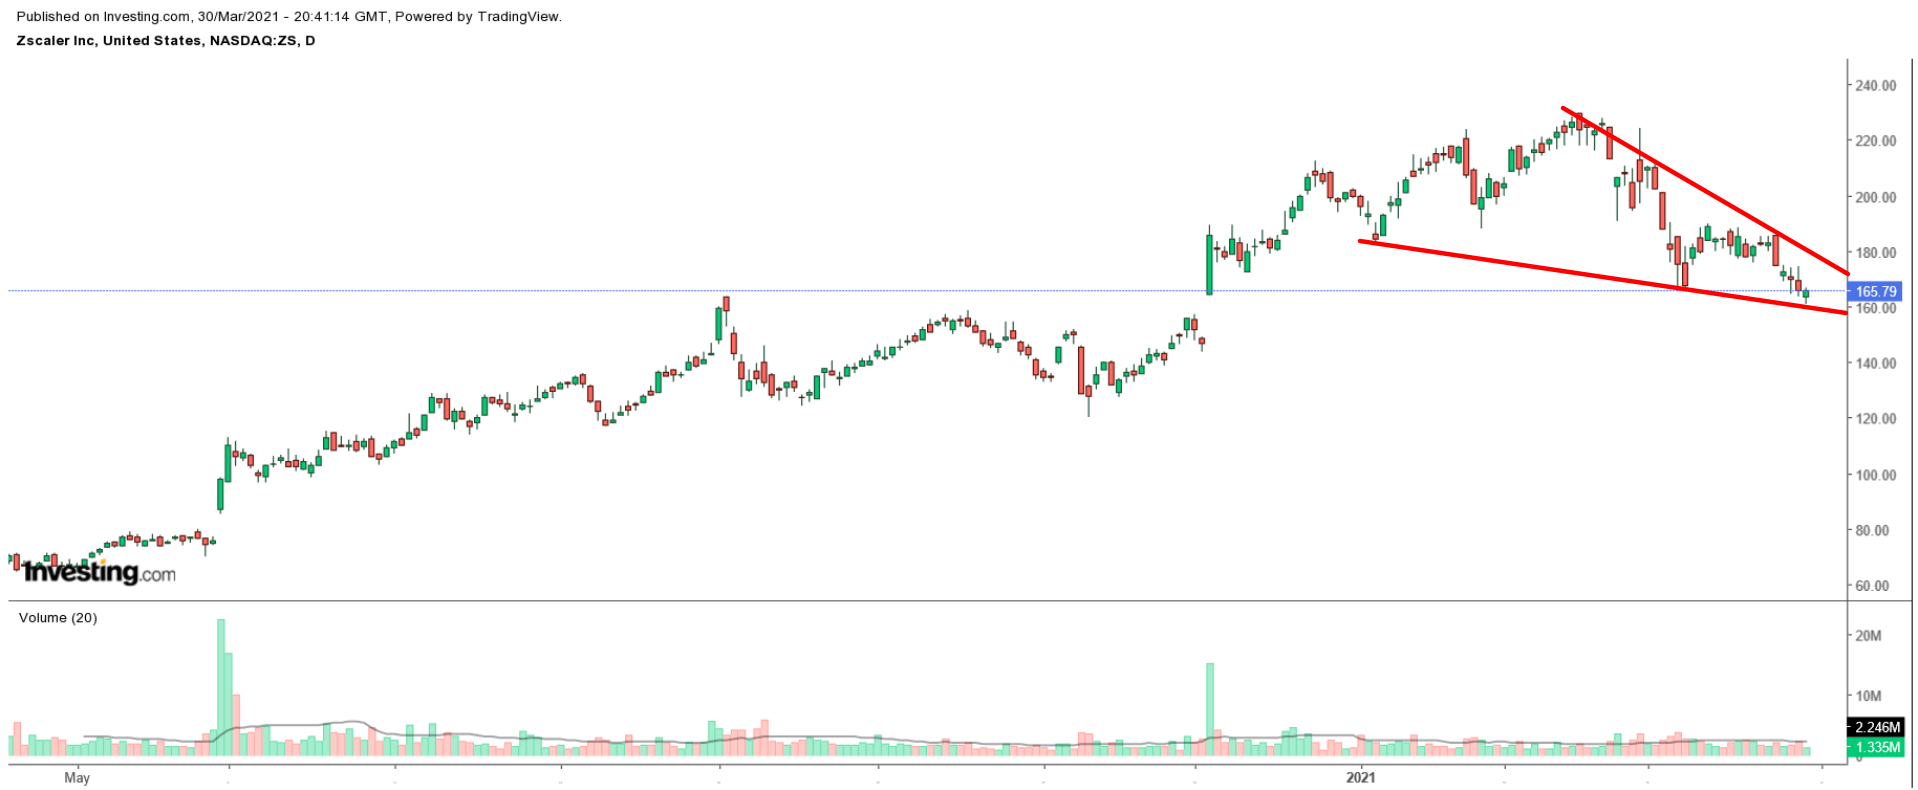 Zscaler Chart